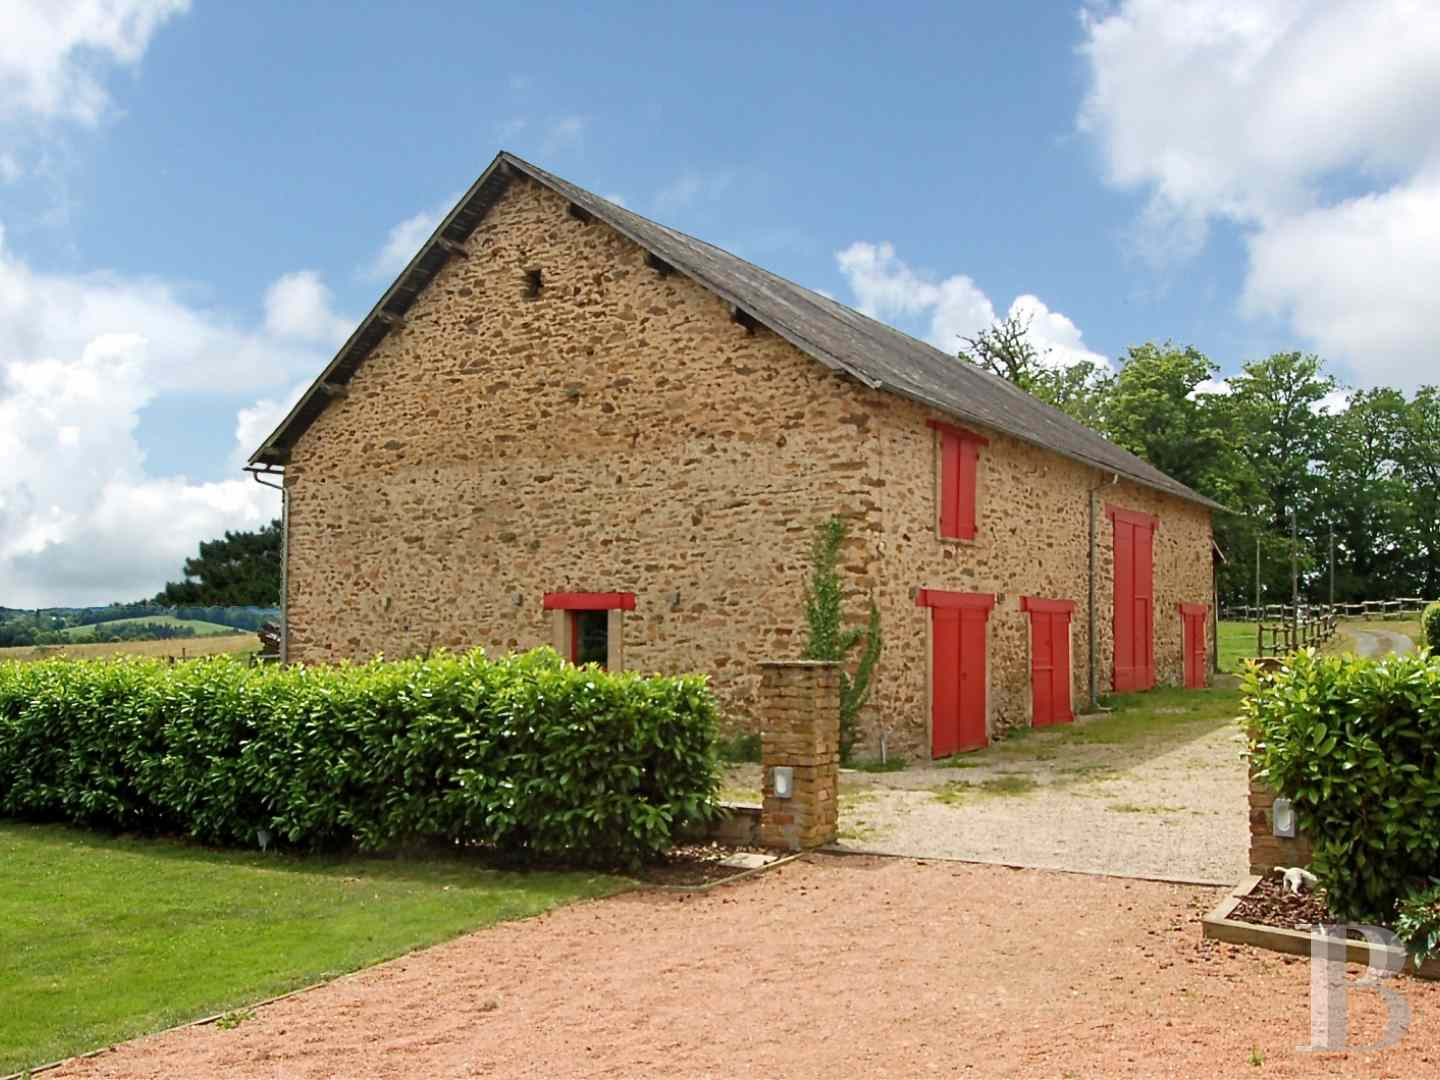 property for sale France limousin free lands - 12 zoom